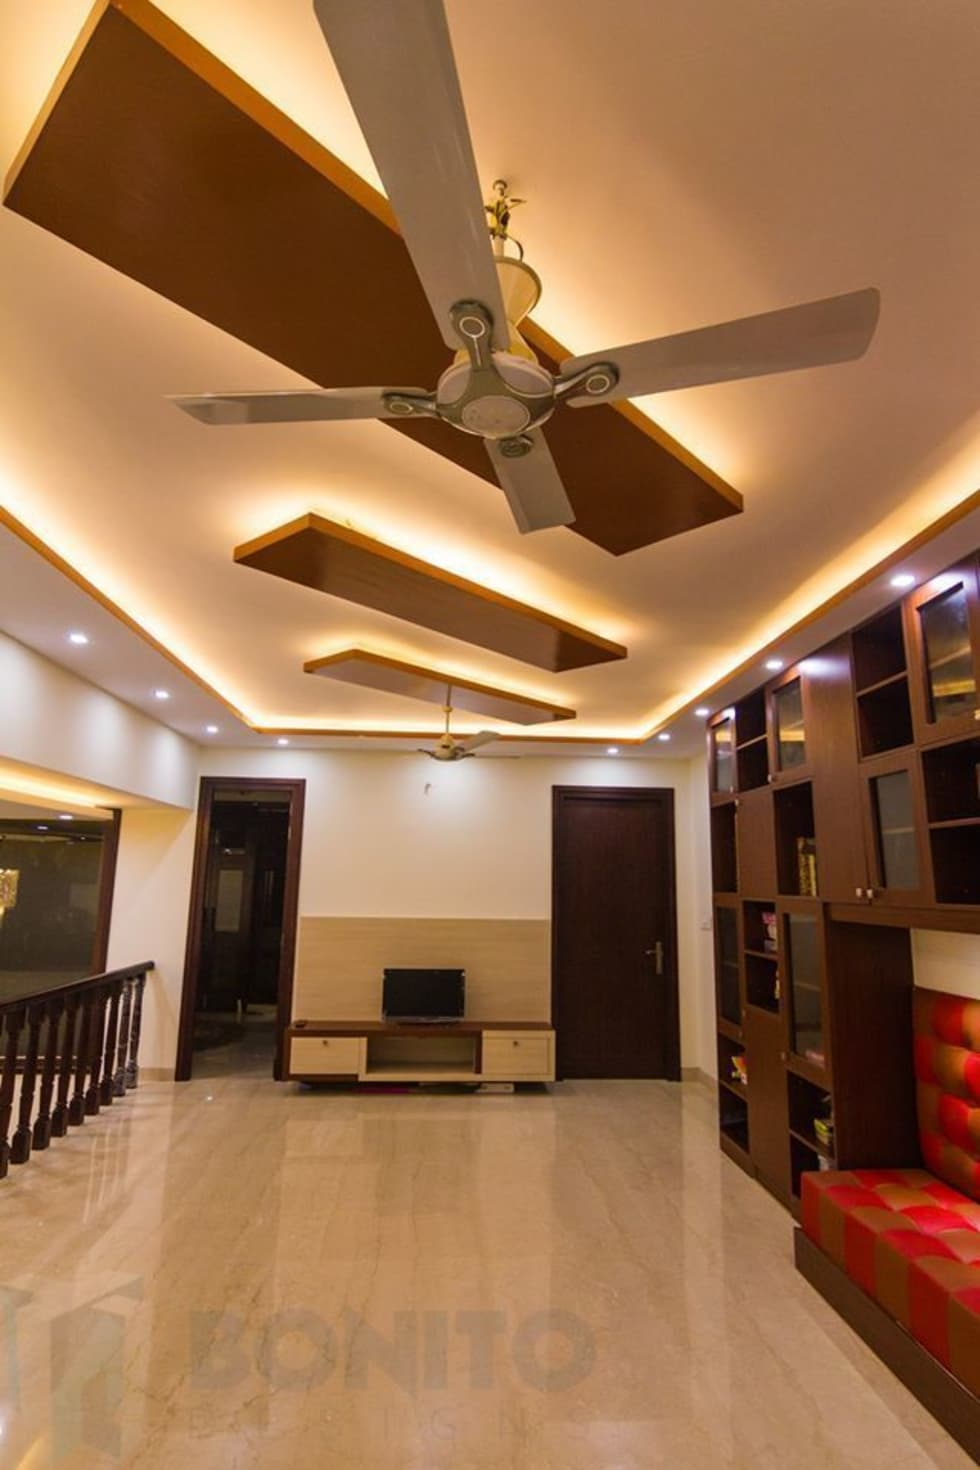 Ceiling for dining room